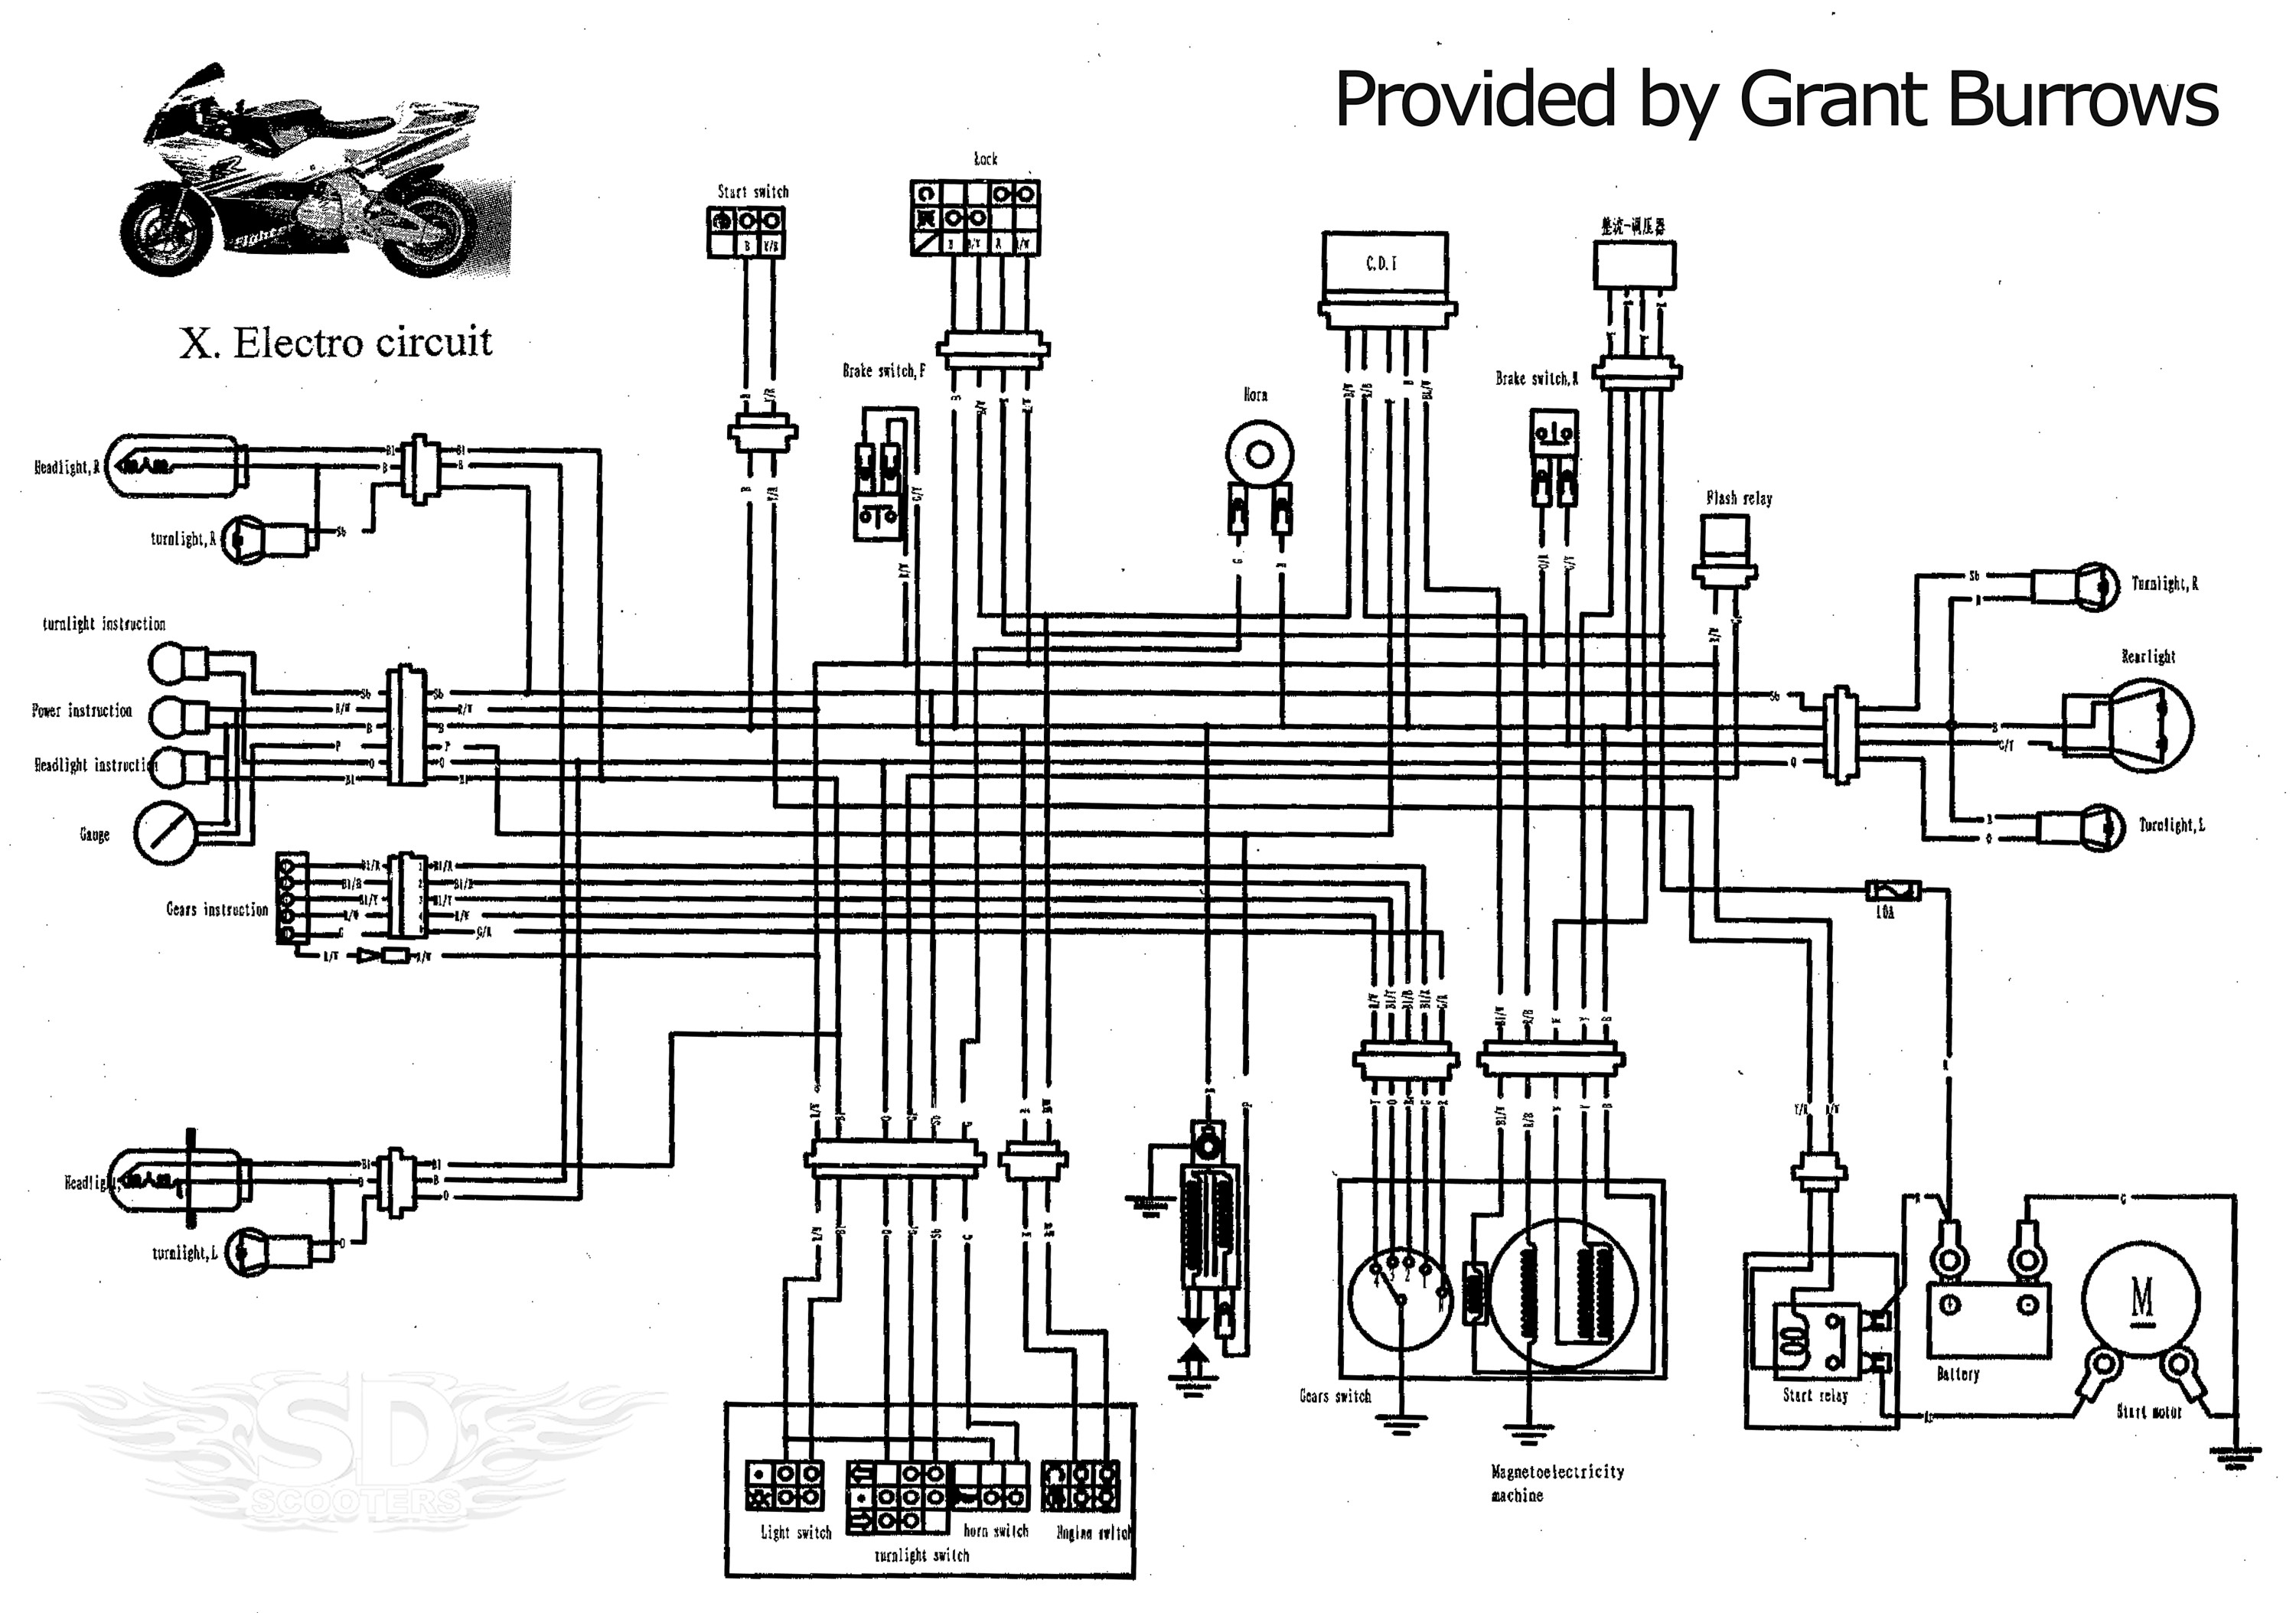 Car Wiring Harness Diagram Pocket Bike Wiring Harness Get Free Image About Wiring Diagram Of Car Wiring Harness Diagram